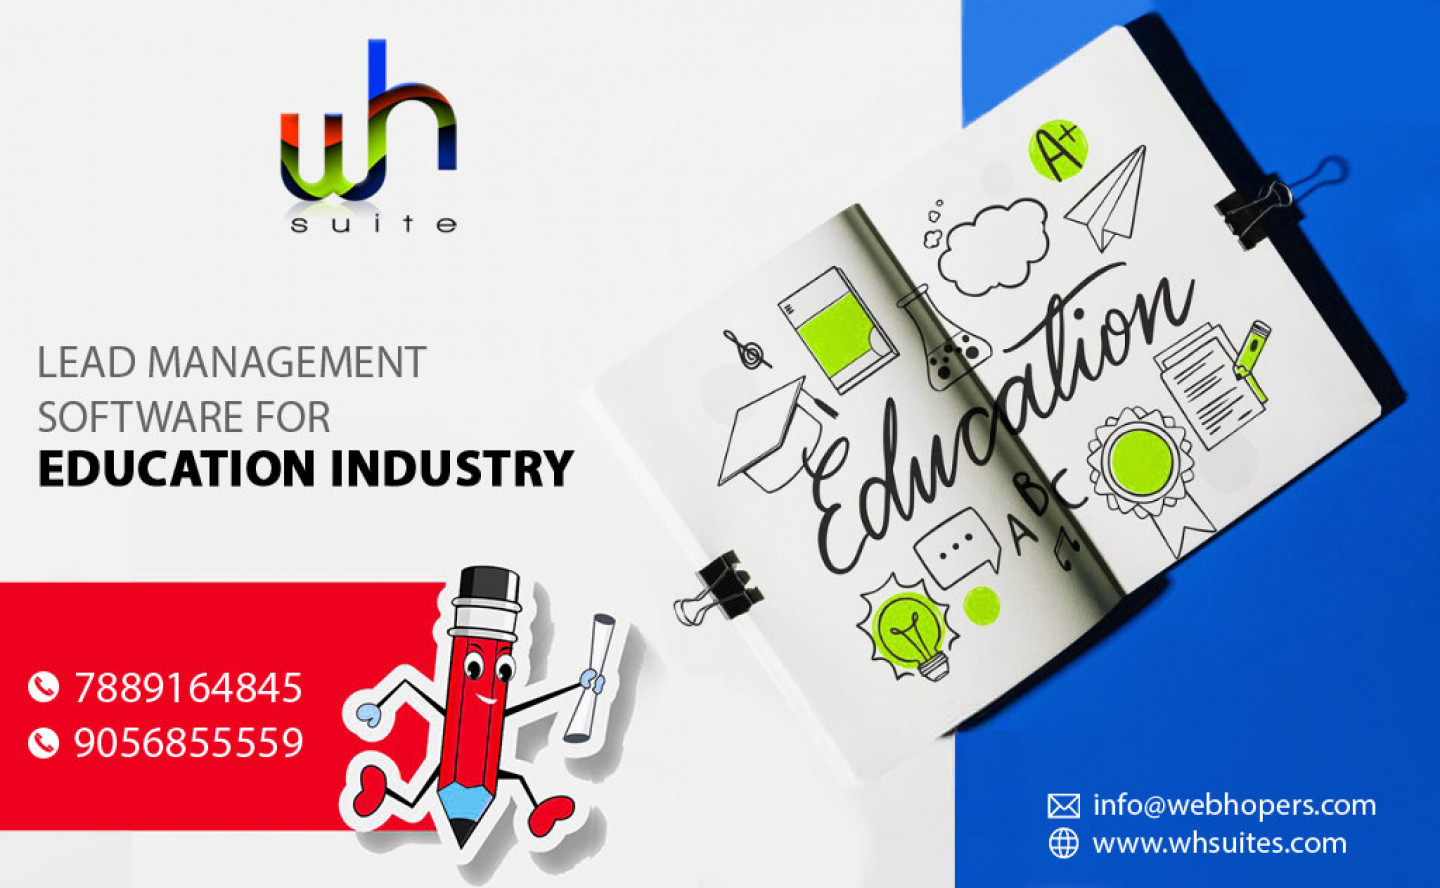 Lead management software for Education Industry